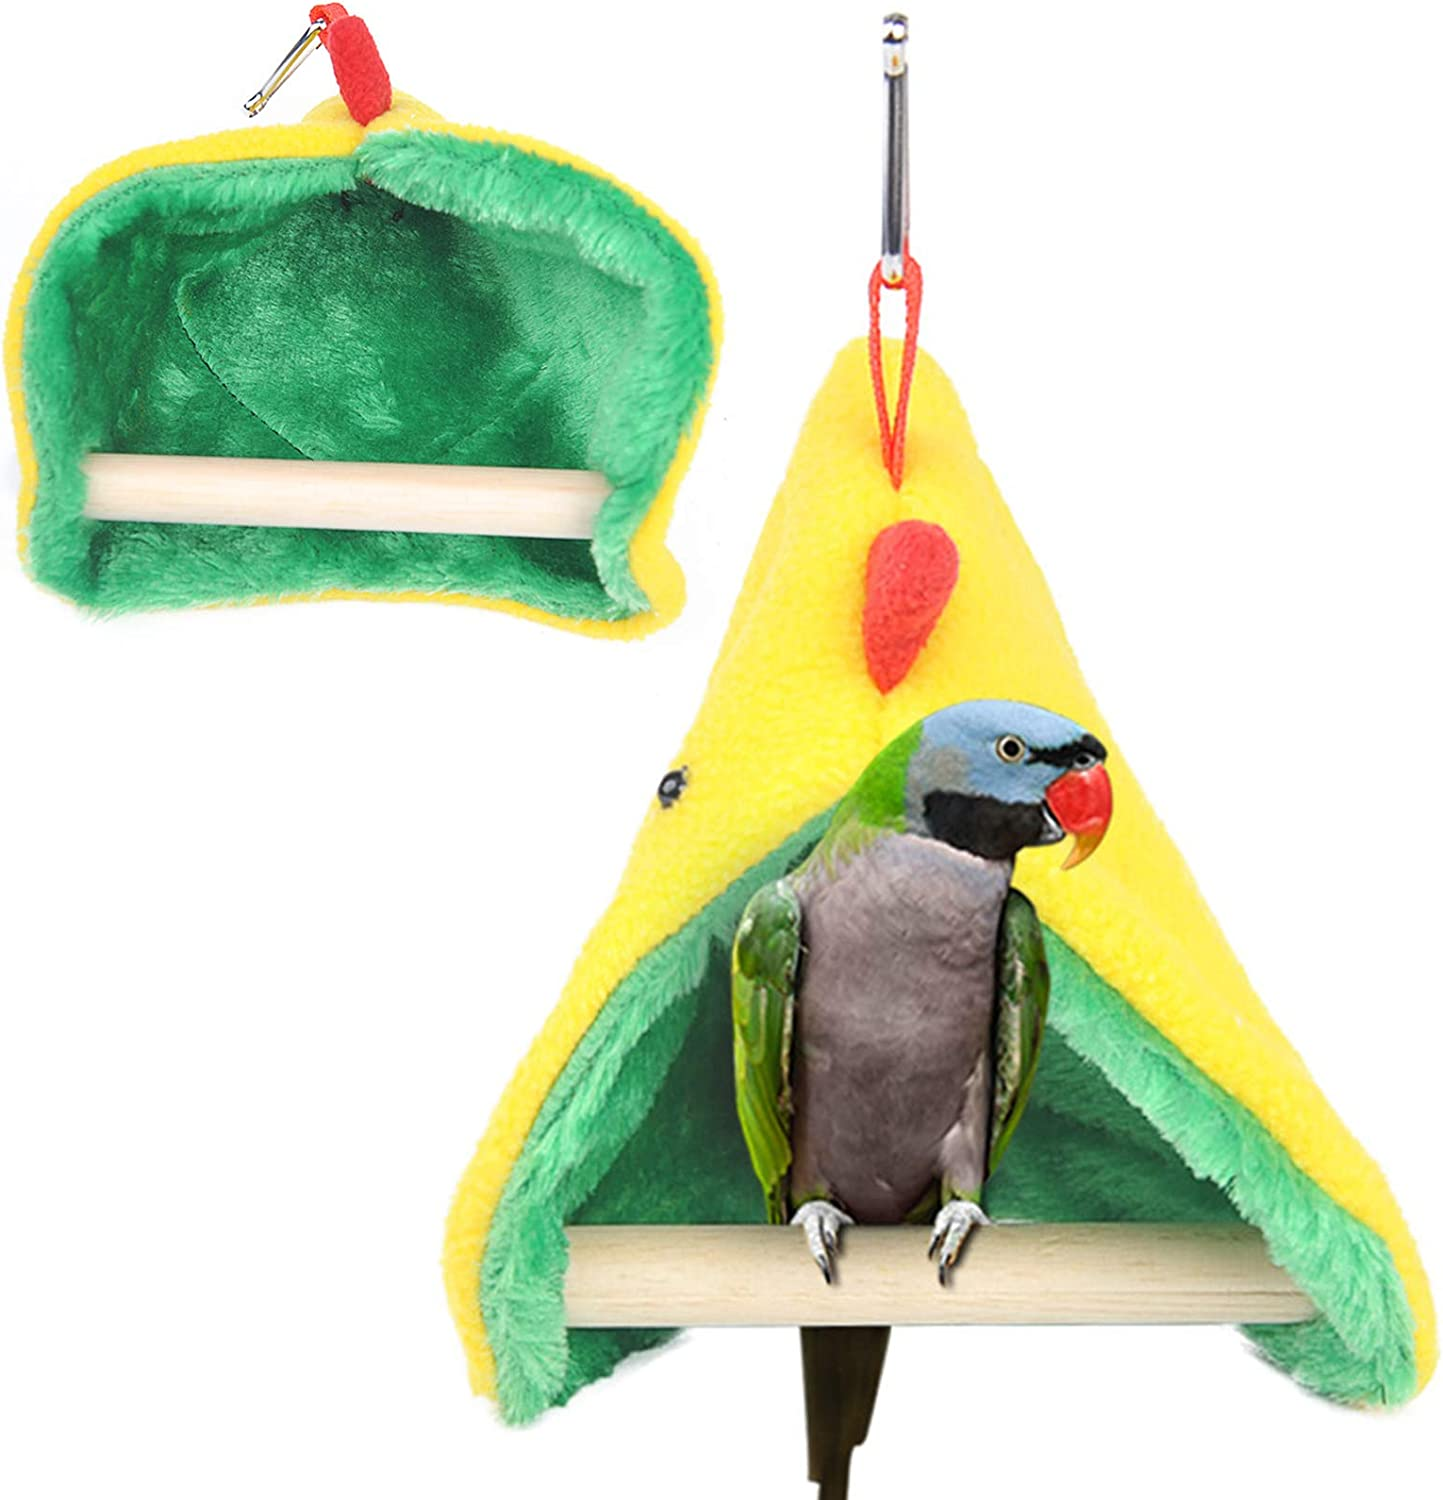 Small Birds Tent Winter Warm Plus Hut,Parrot Habitat with Standing Stick Bird Nest Hanging Hammock for Cage,Hideaway Cave Snuggle Sleeping Bed for Budgie Lovebirds Canaries Finches Small Conures